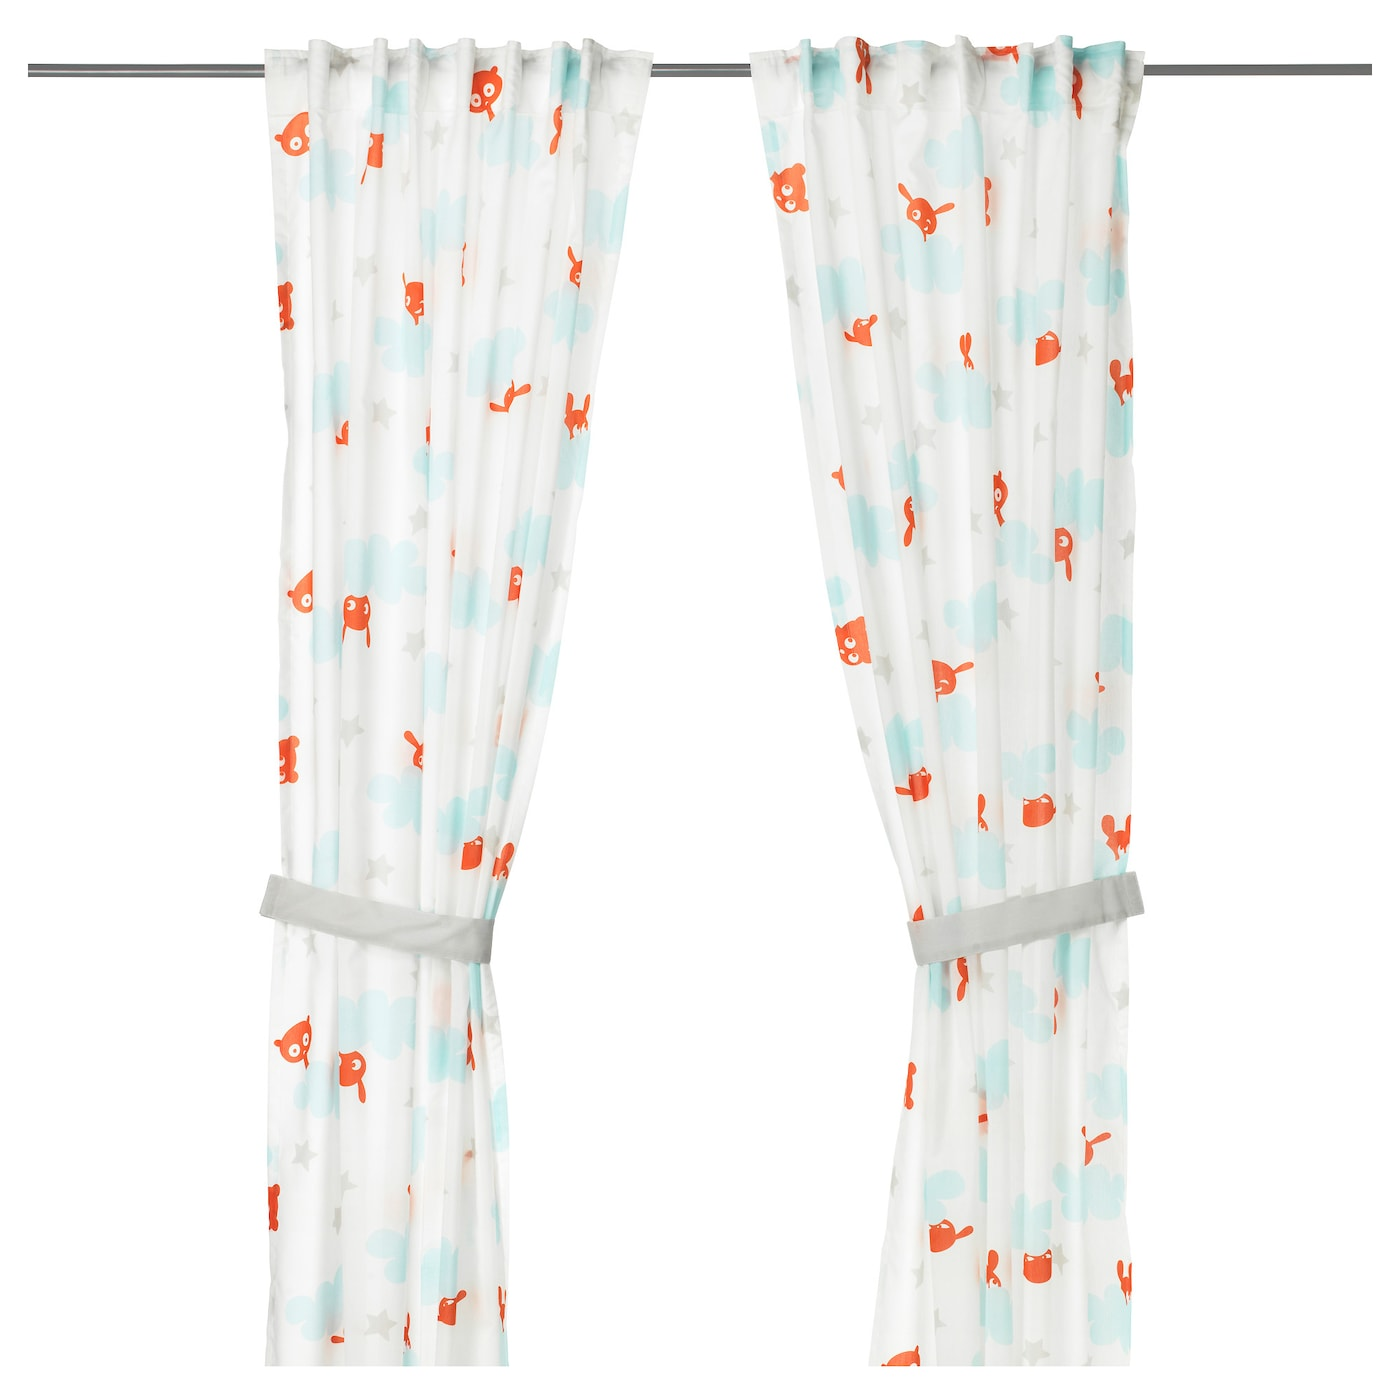 IKEA STJÄRNBILD curtains with tie-backs, 1 pair